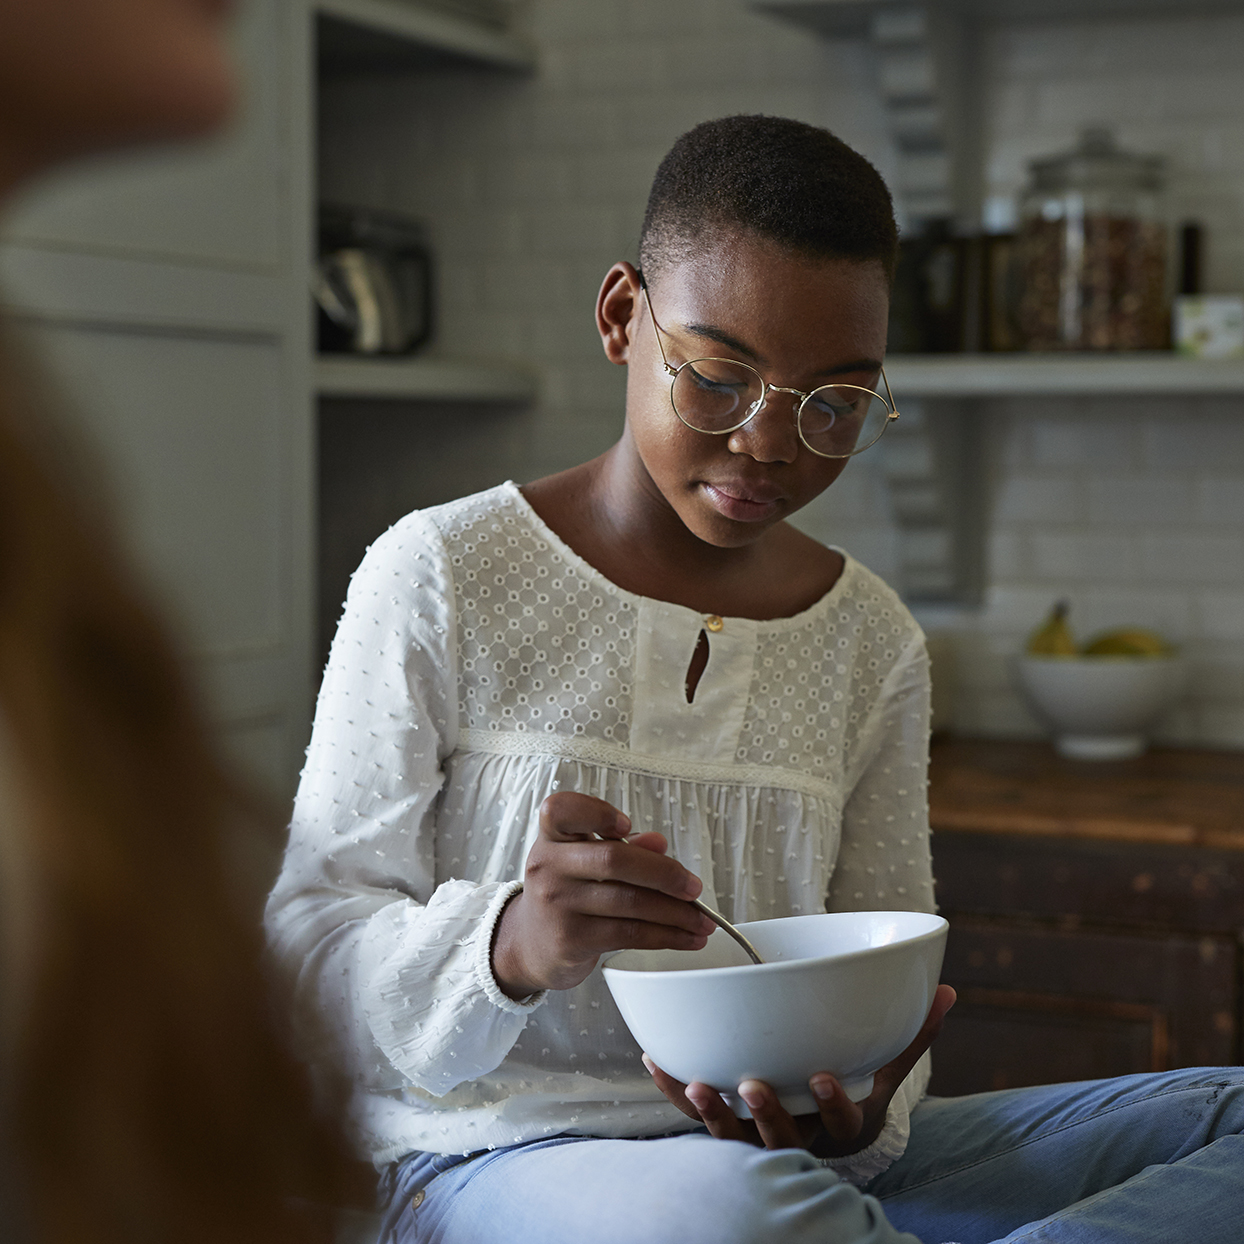 A bowlful of Grape-Nuts cereal can pack in 416 calories (per cup, without milk). What is even more surprising is its sodium content. With 580 mg of sodium per cup (and it's not exactly packed with fiber either), there are much better breakfast options out there.